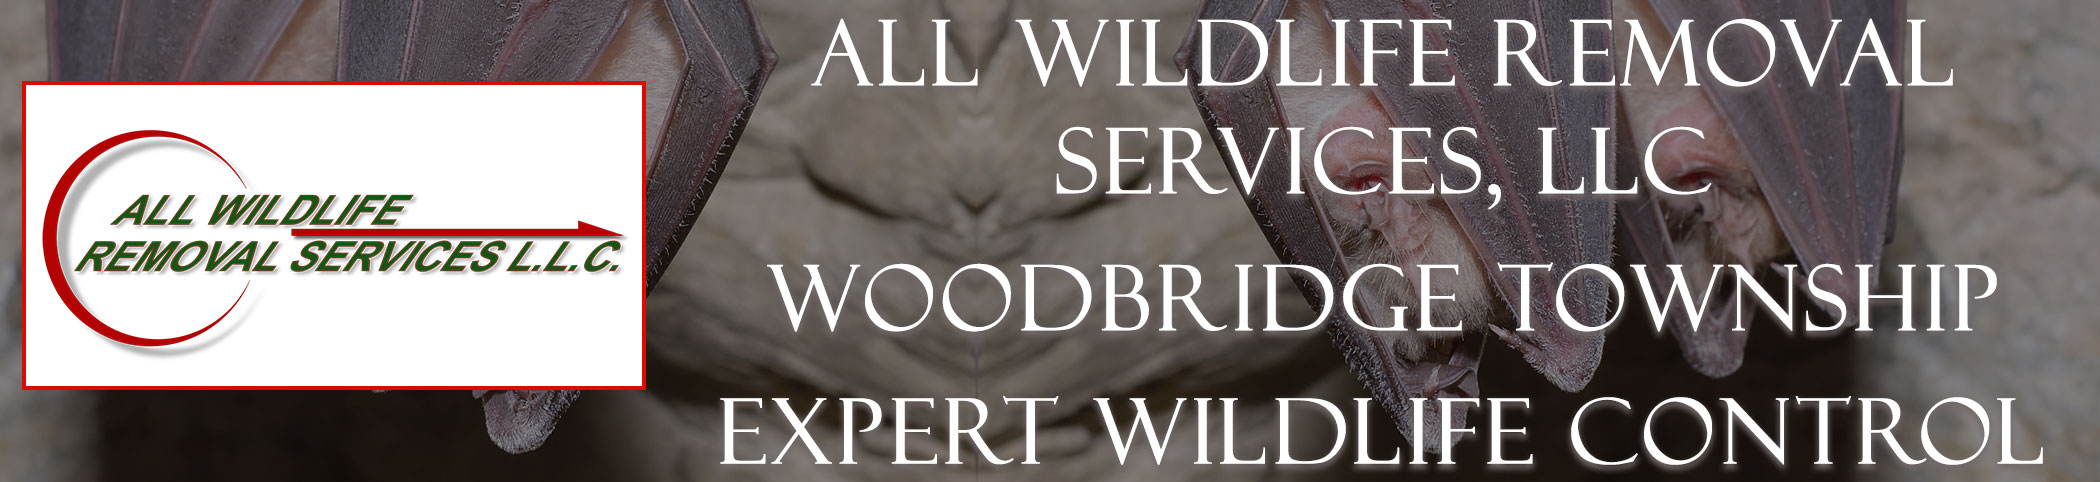 all-wildlife-removal-services-Woodbridge-Township-new-jersey-header